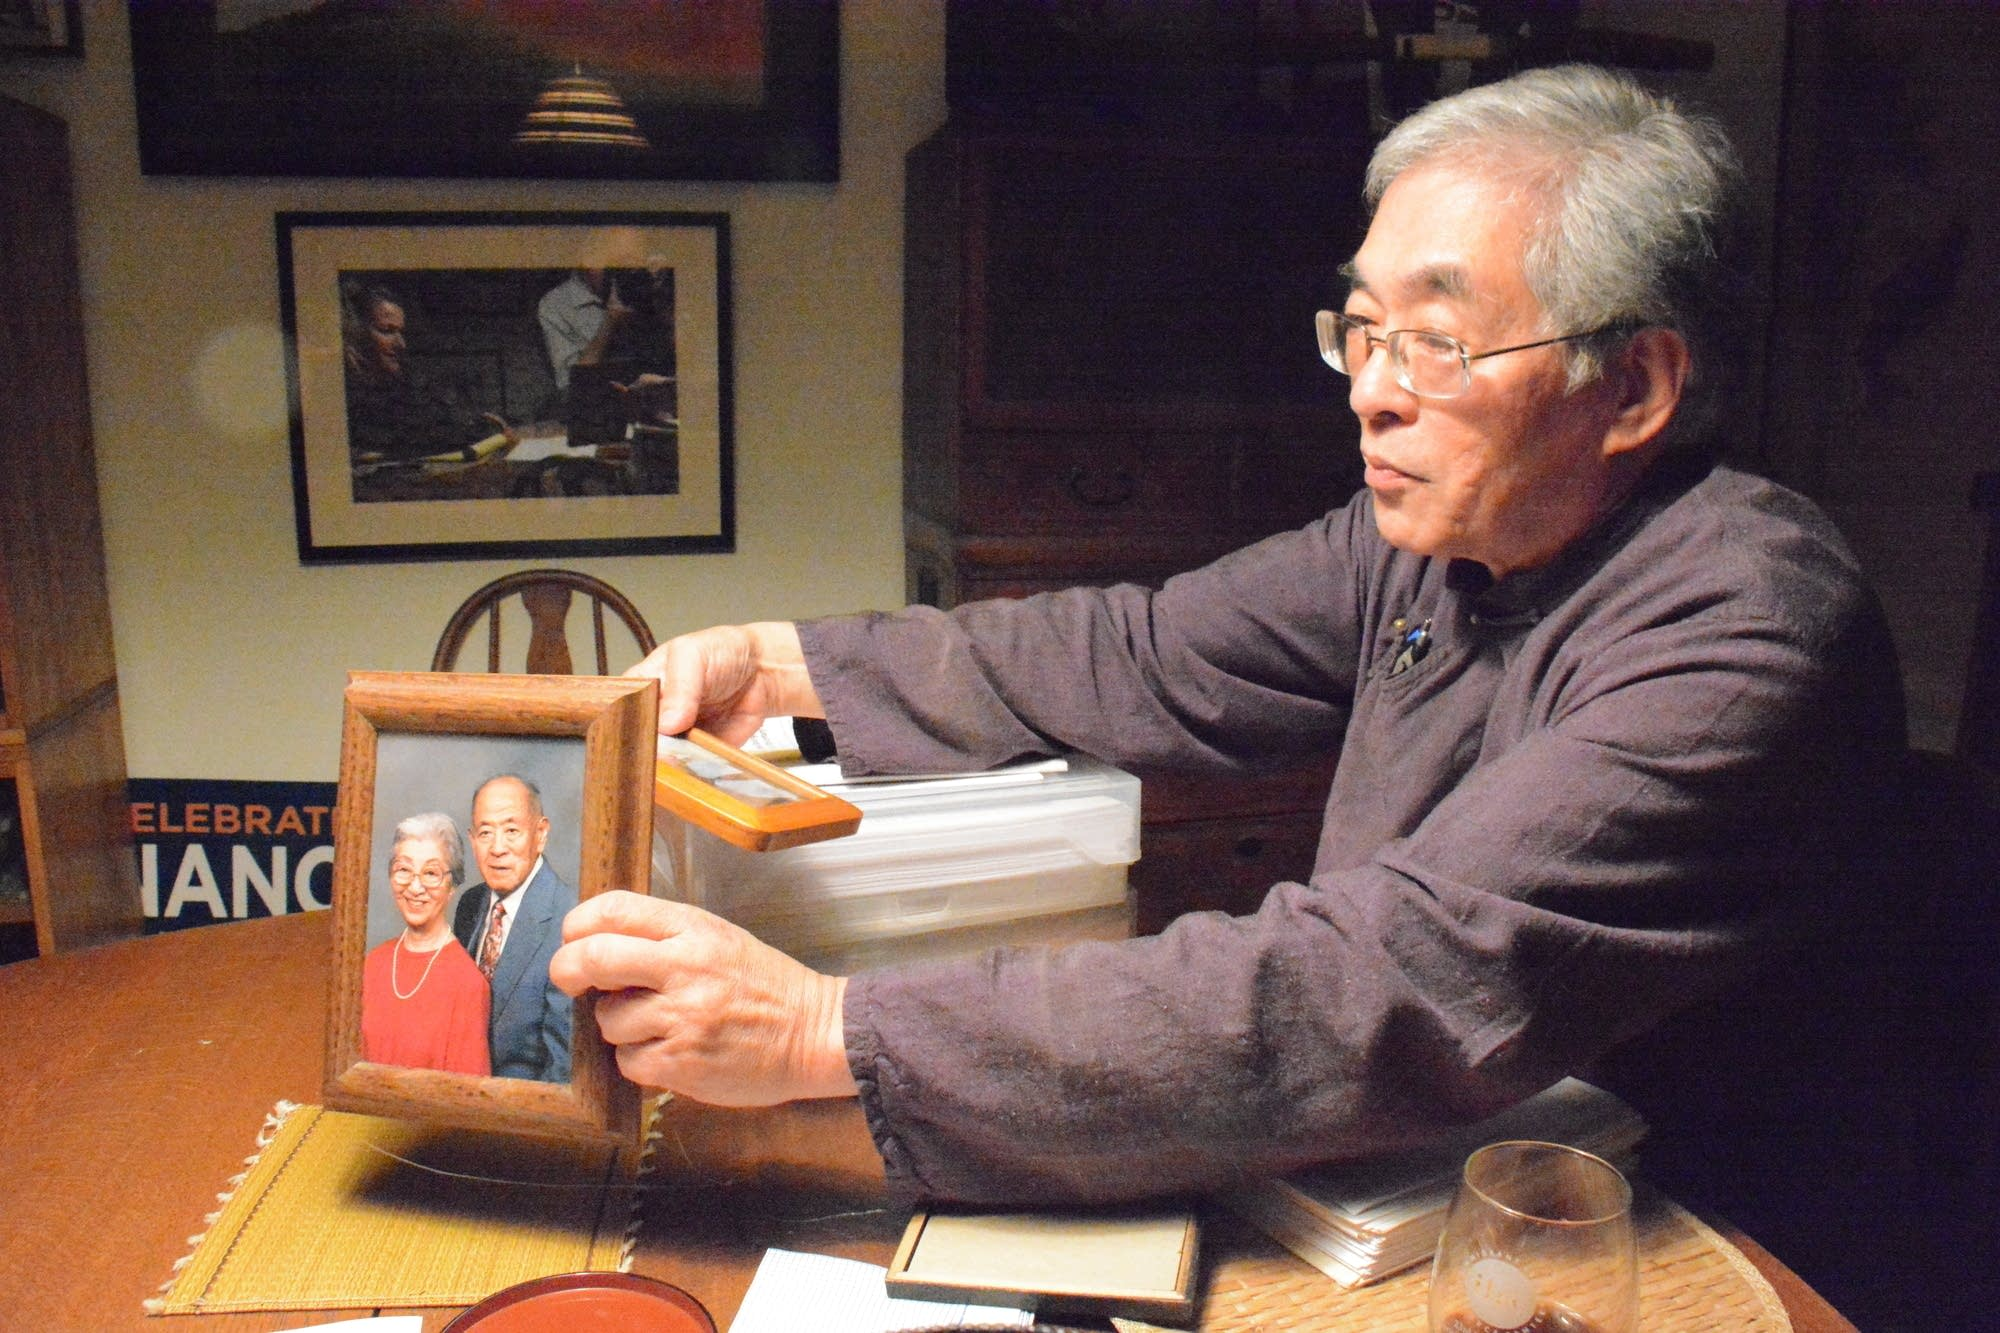 Norm Ishimoto holds up a photo of his parents, Paul and May Ishimoto.